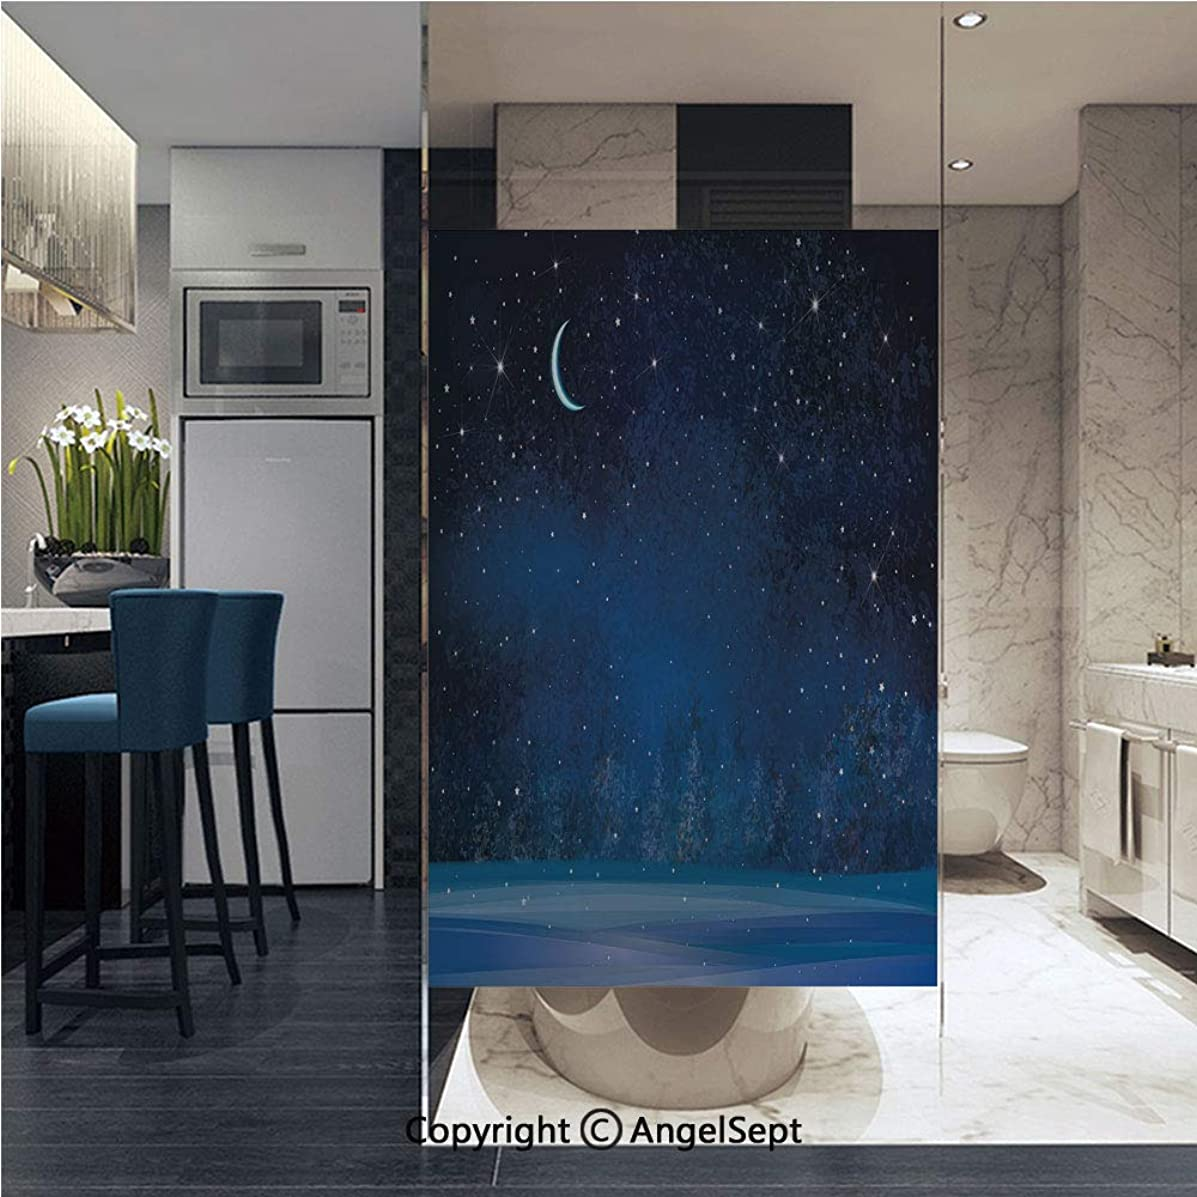 AngelSept Non-Adhesive Privacy Window Film Winter Wonderland at Night Snowy Woodland Magical Fantastic Forest Nature Scenery Door Sticker Glass Film 22.8 in. by 35.4in. (58cm by 90cm),Blue Indigo